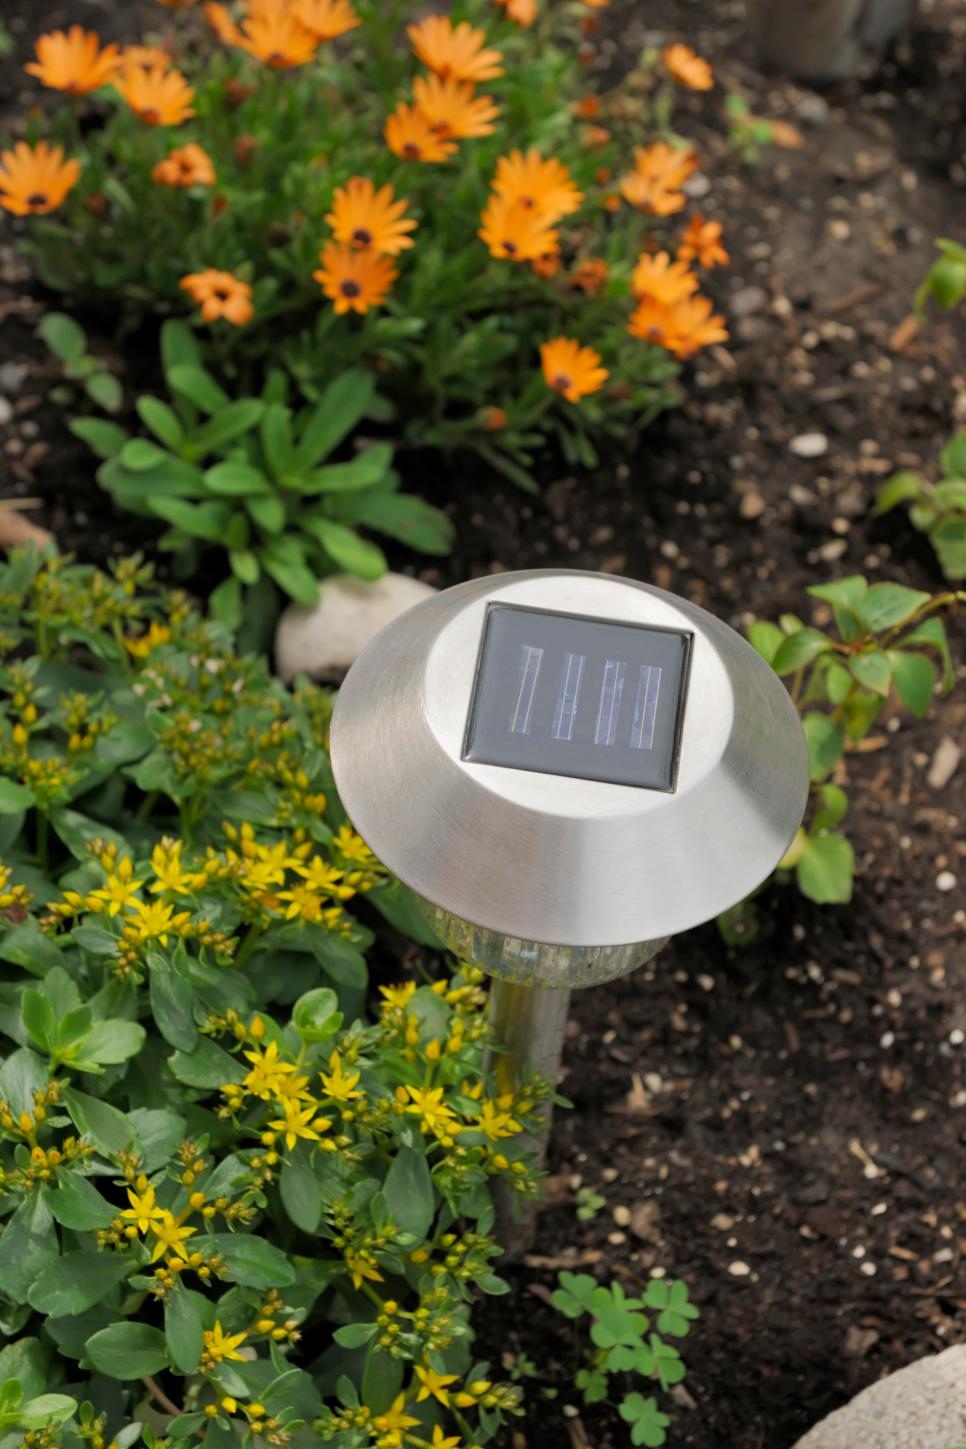 Frodo-iStock-6835718_solar-powered-outdoor-light.jpg.rend.hgtvcom.966.1449.jpeg